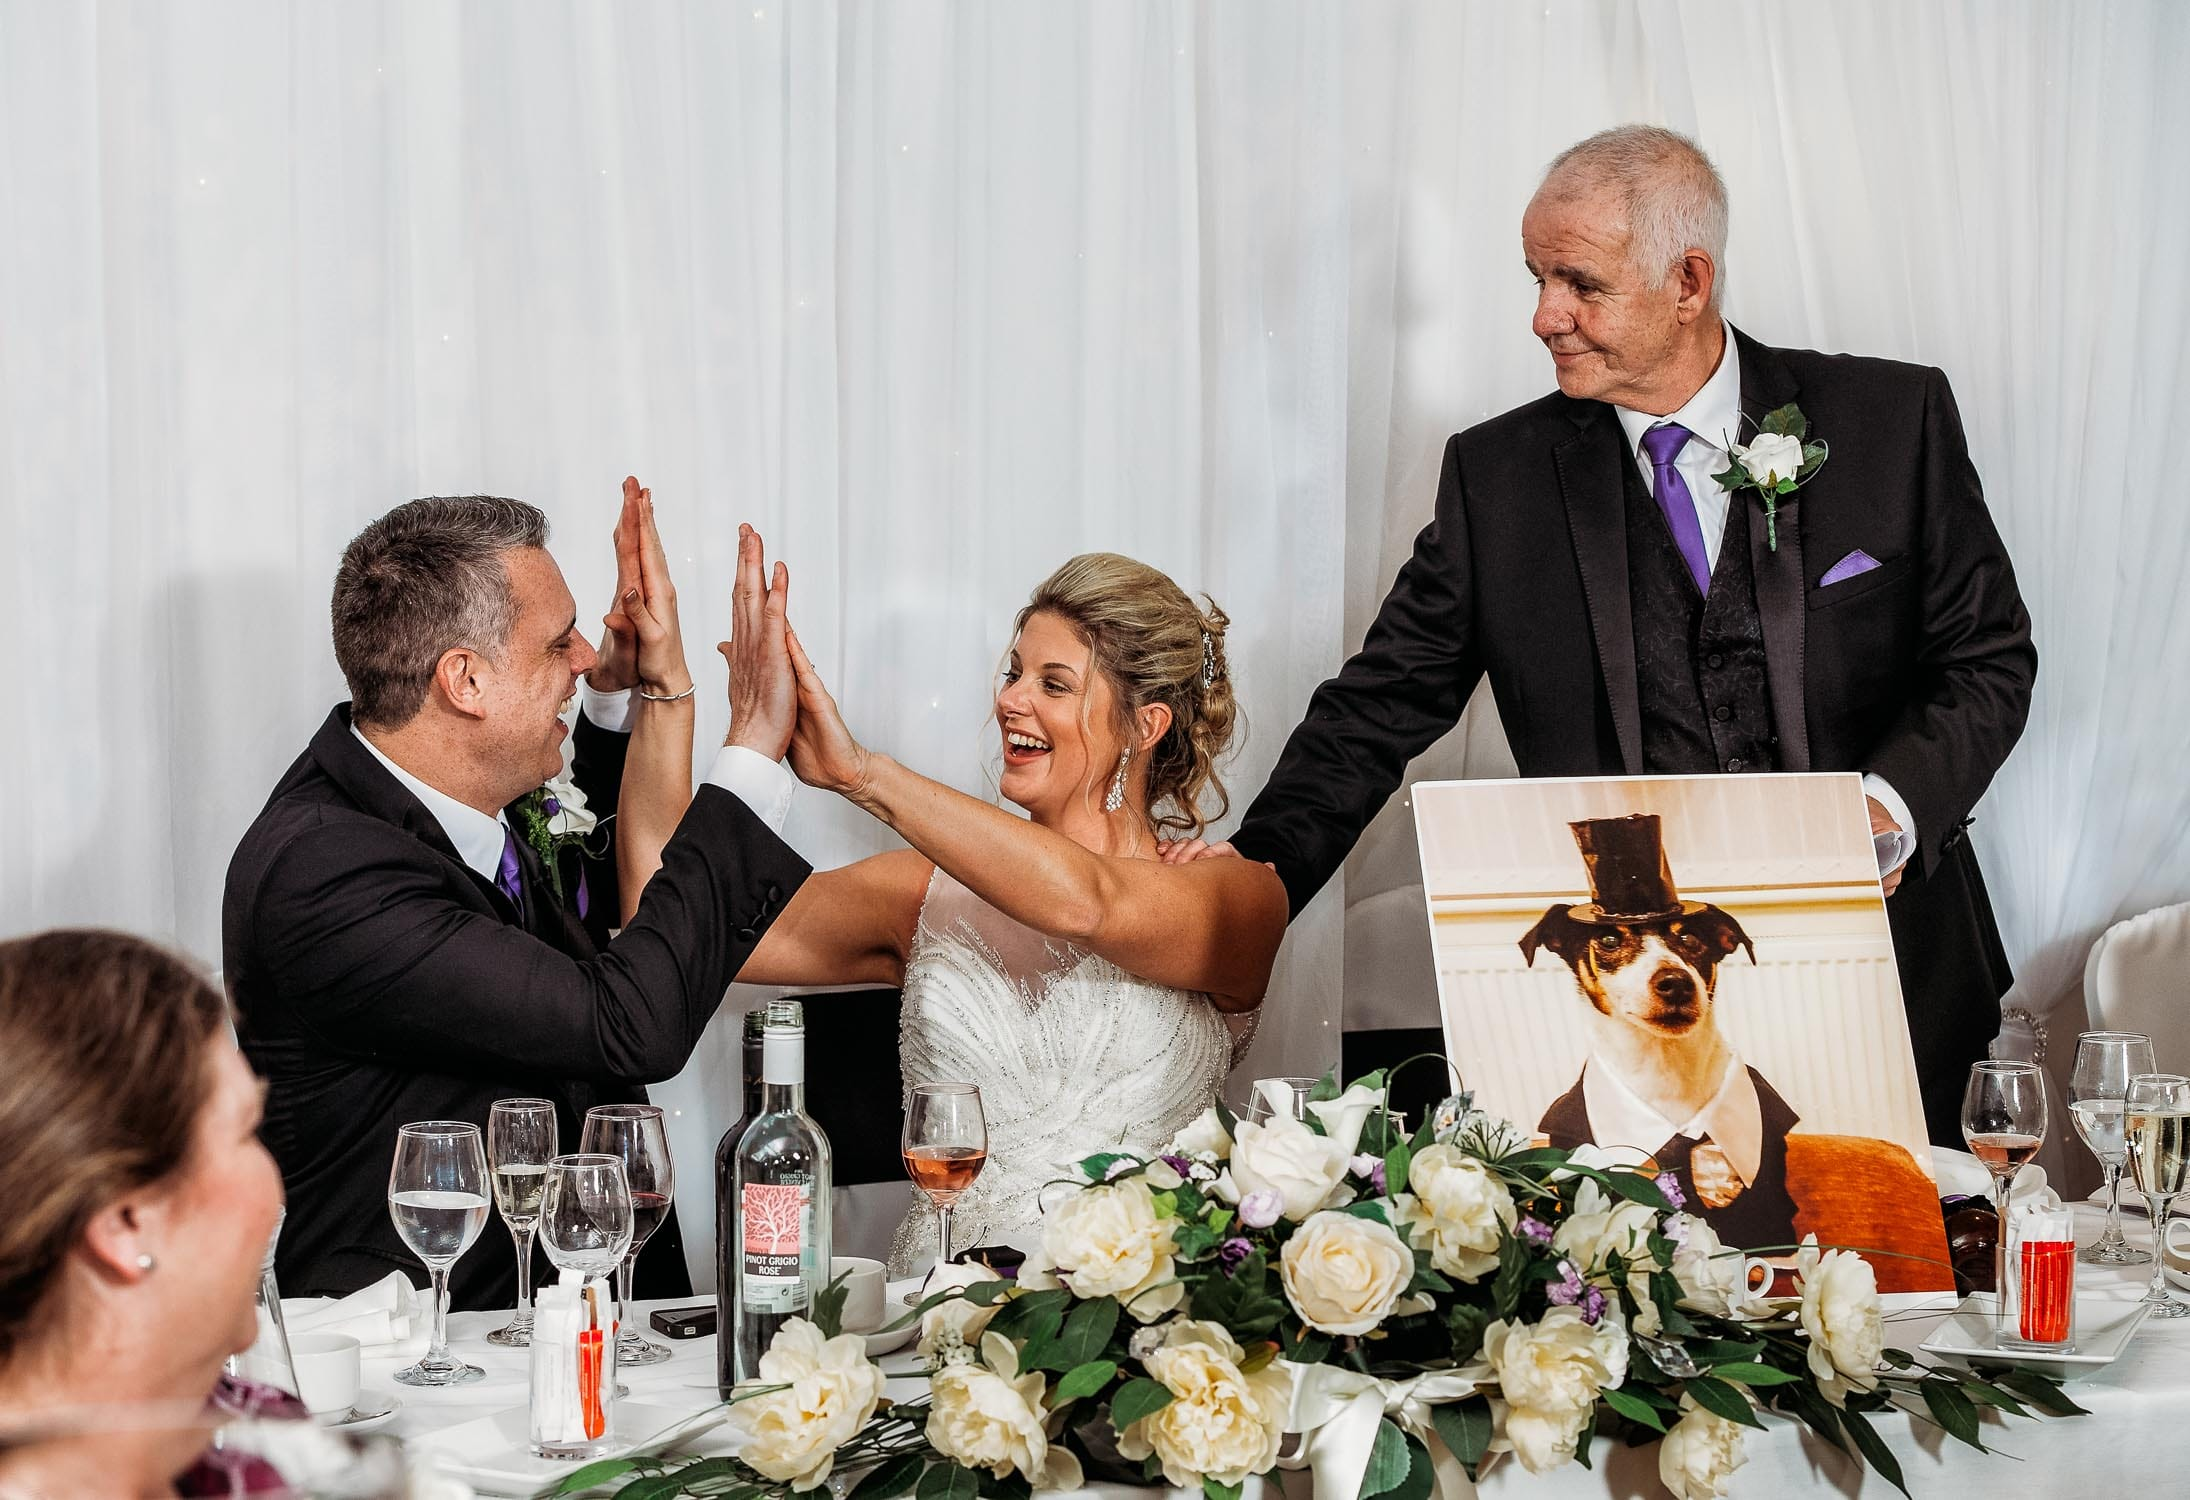 Speeches during a wedding at Breadsall Priory in Derby